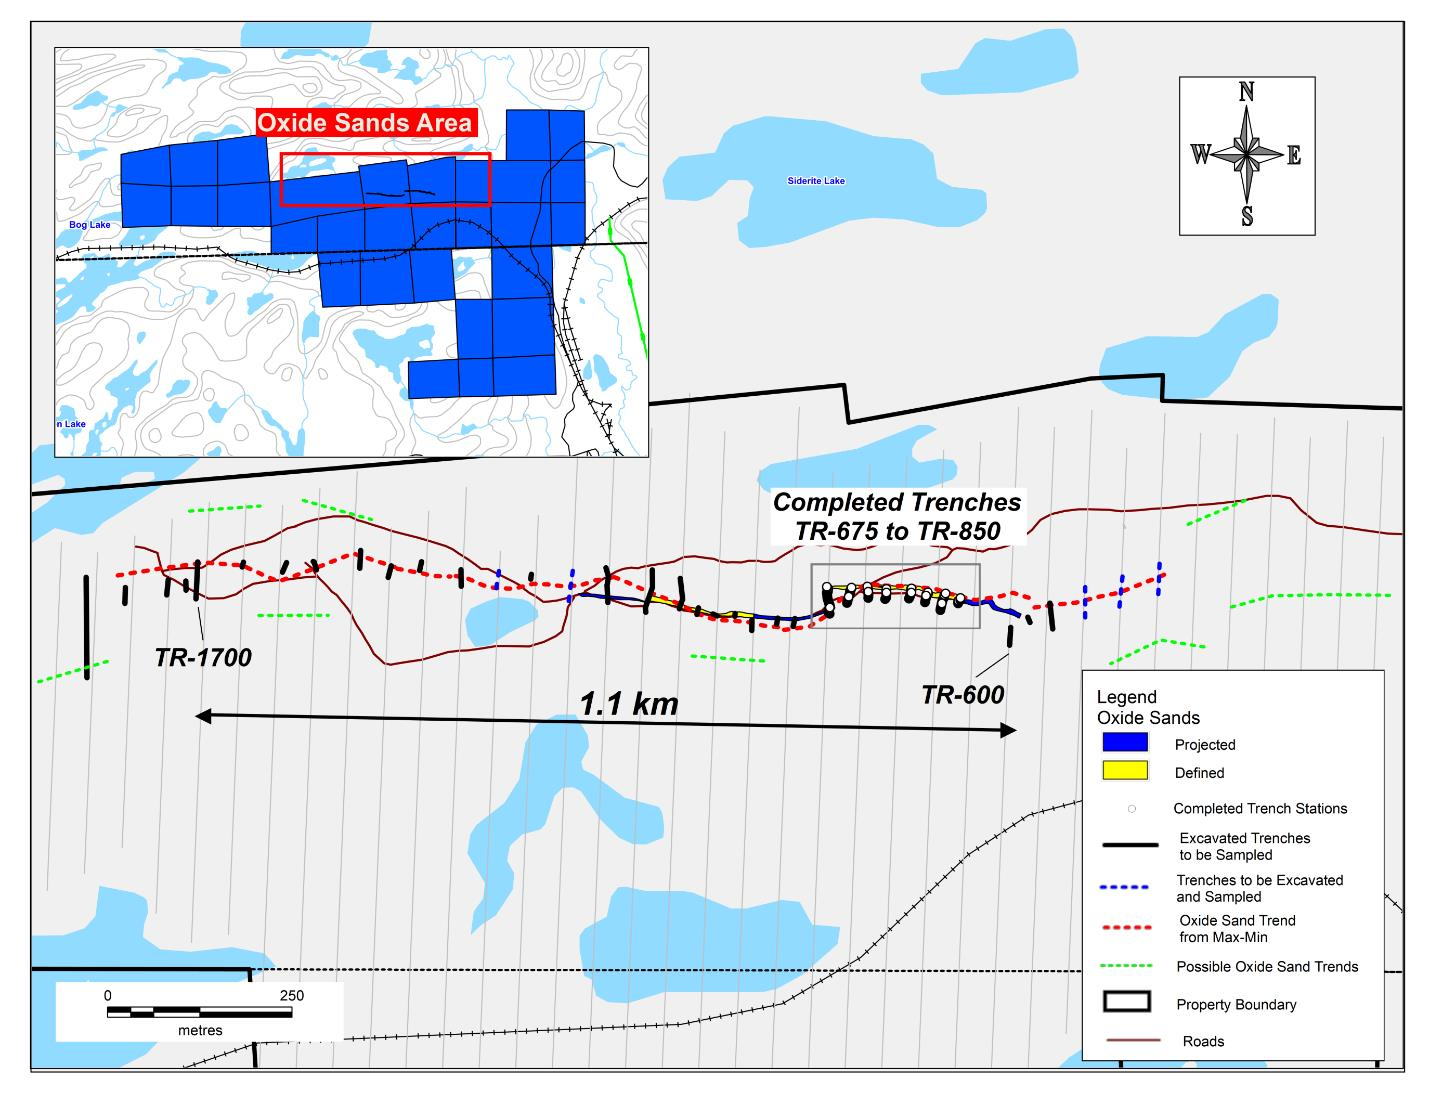 Oxide Sands extended 500m along trend on Wawa-Holdsworth Project ...